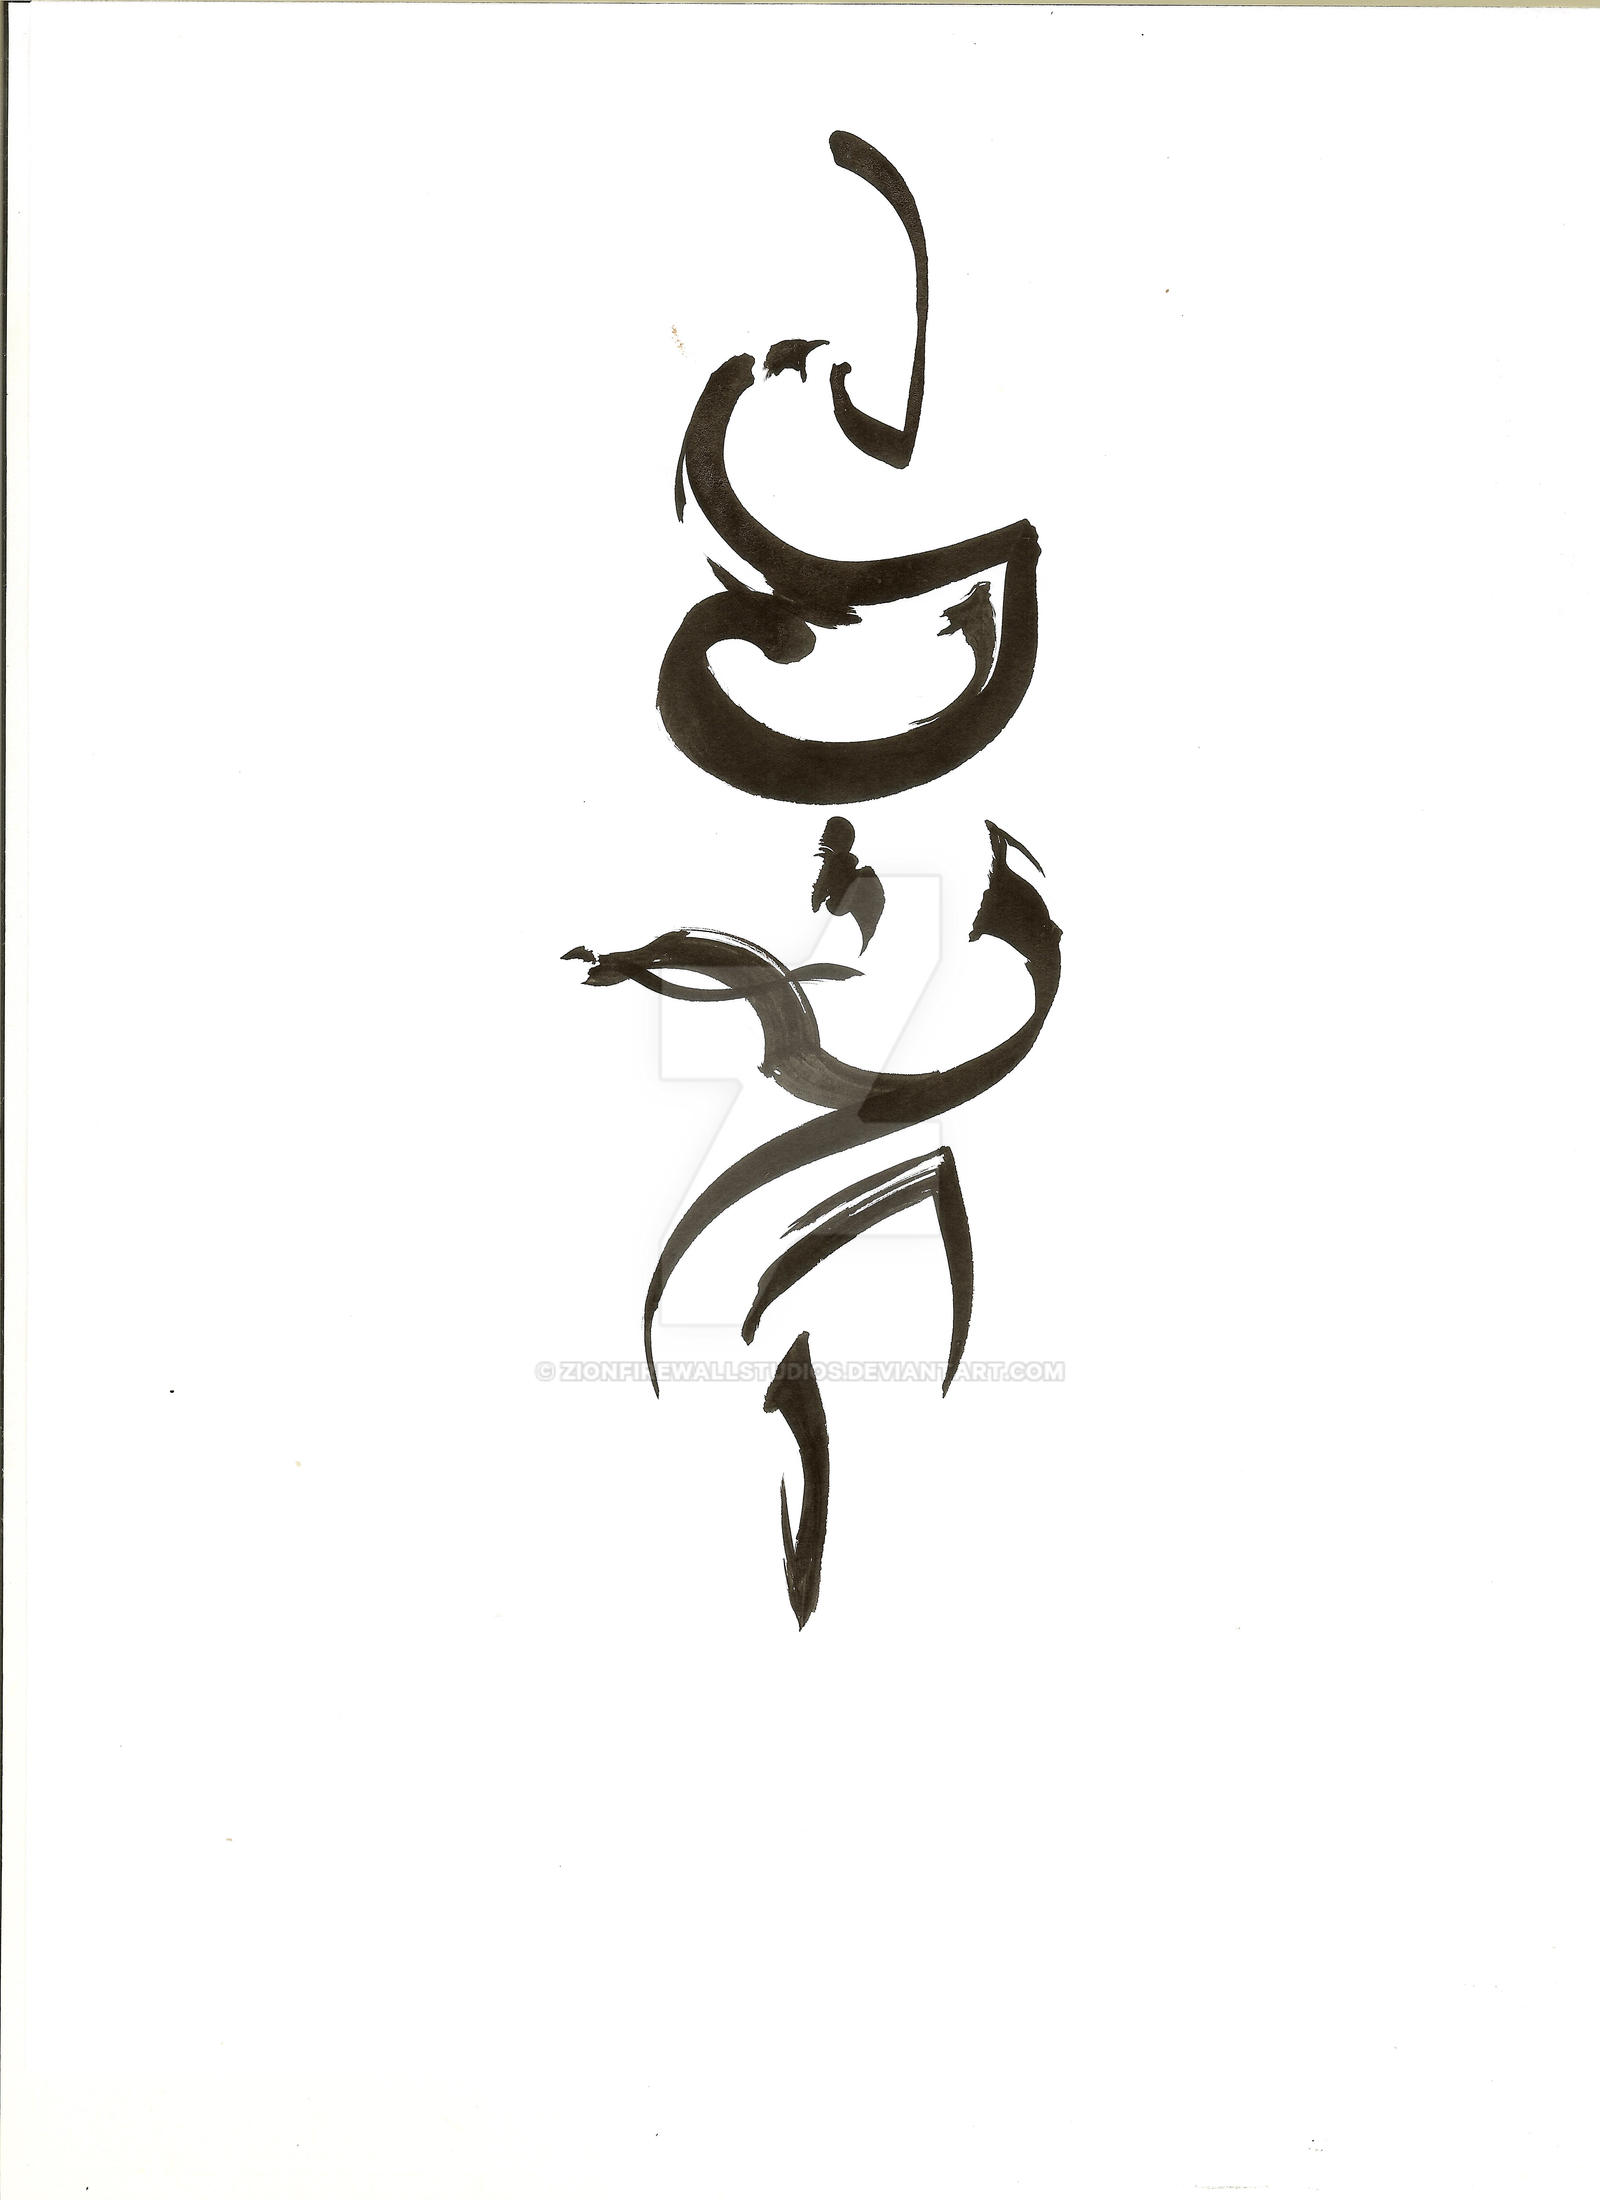 Hebrew calligraphy by zionfirewallstudios on deviantart Hebrew calligraphy art